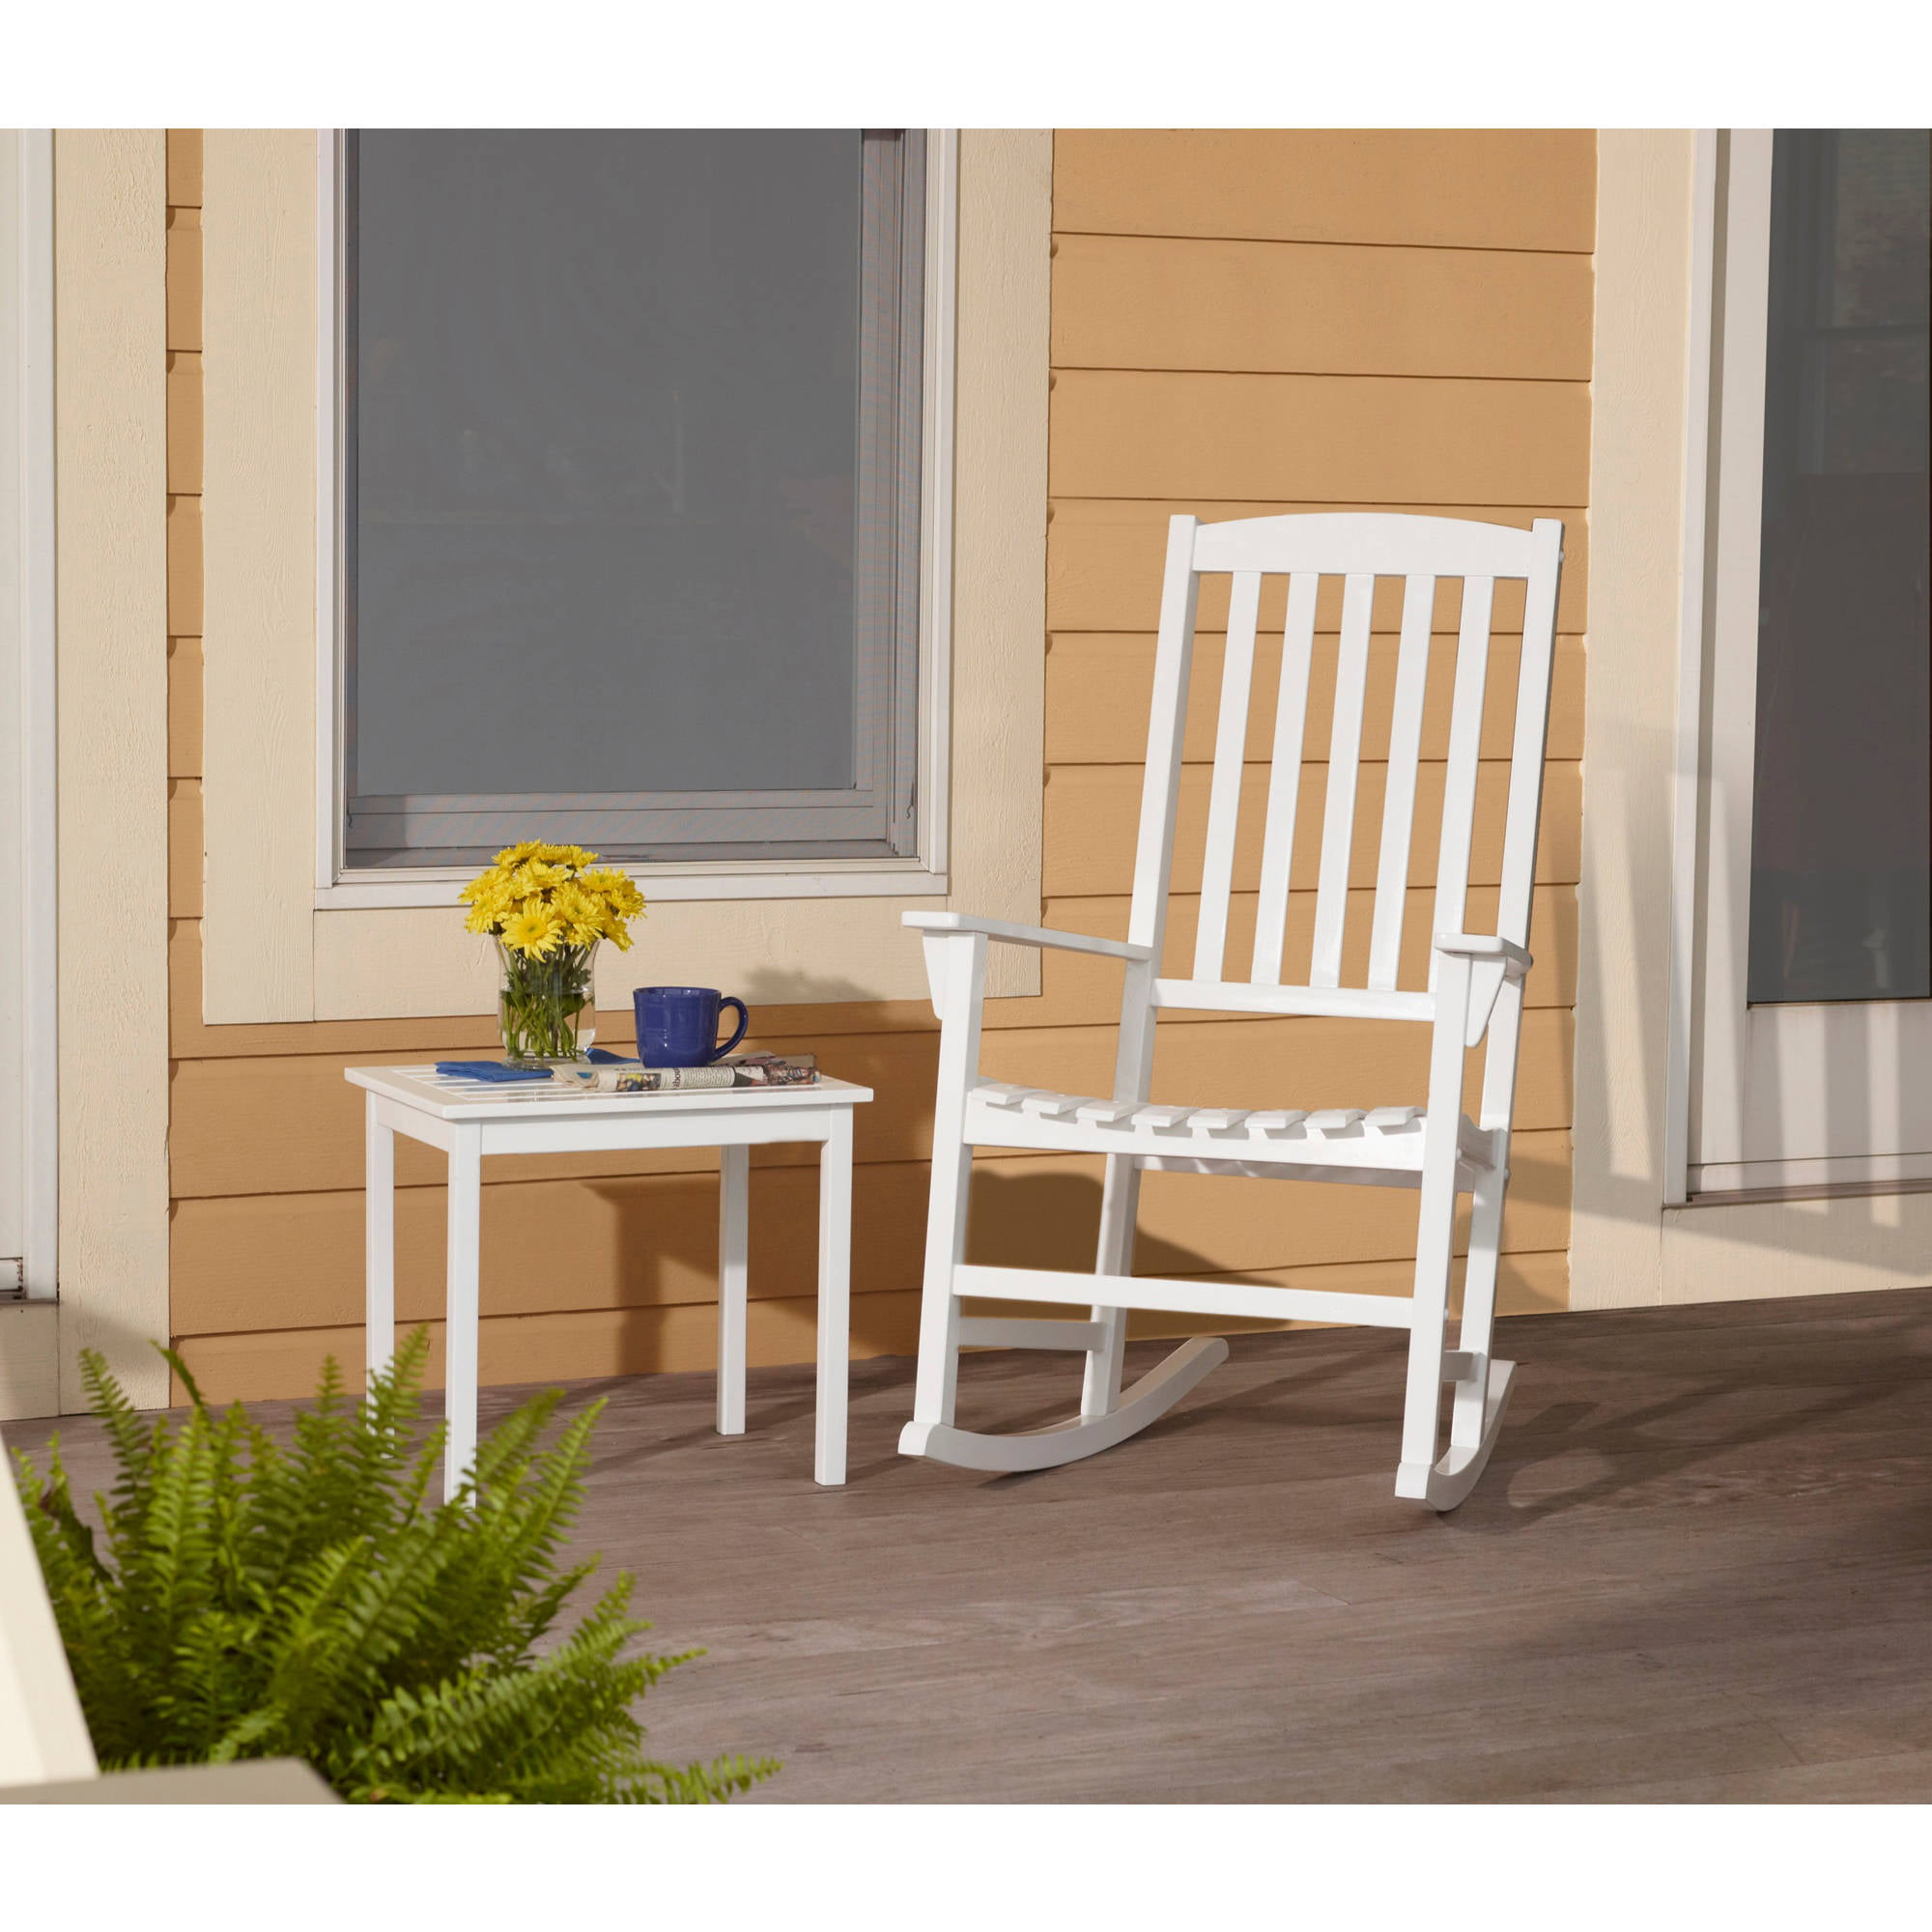 Garden Furniture Table And Chairs patio furniture - walmart